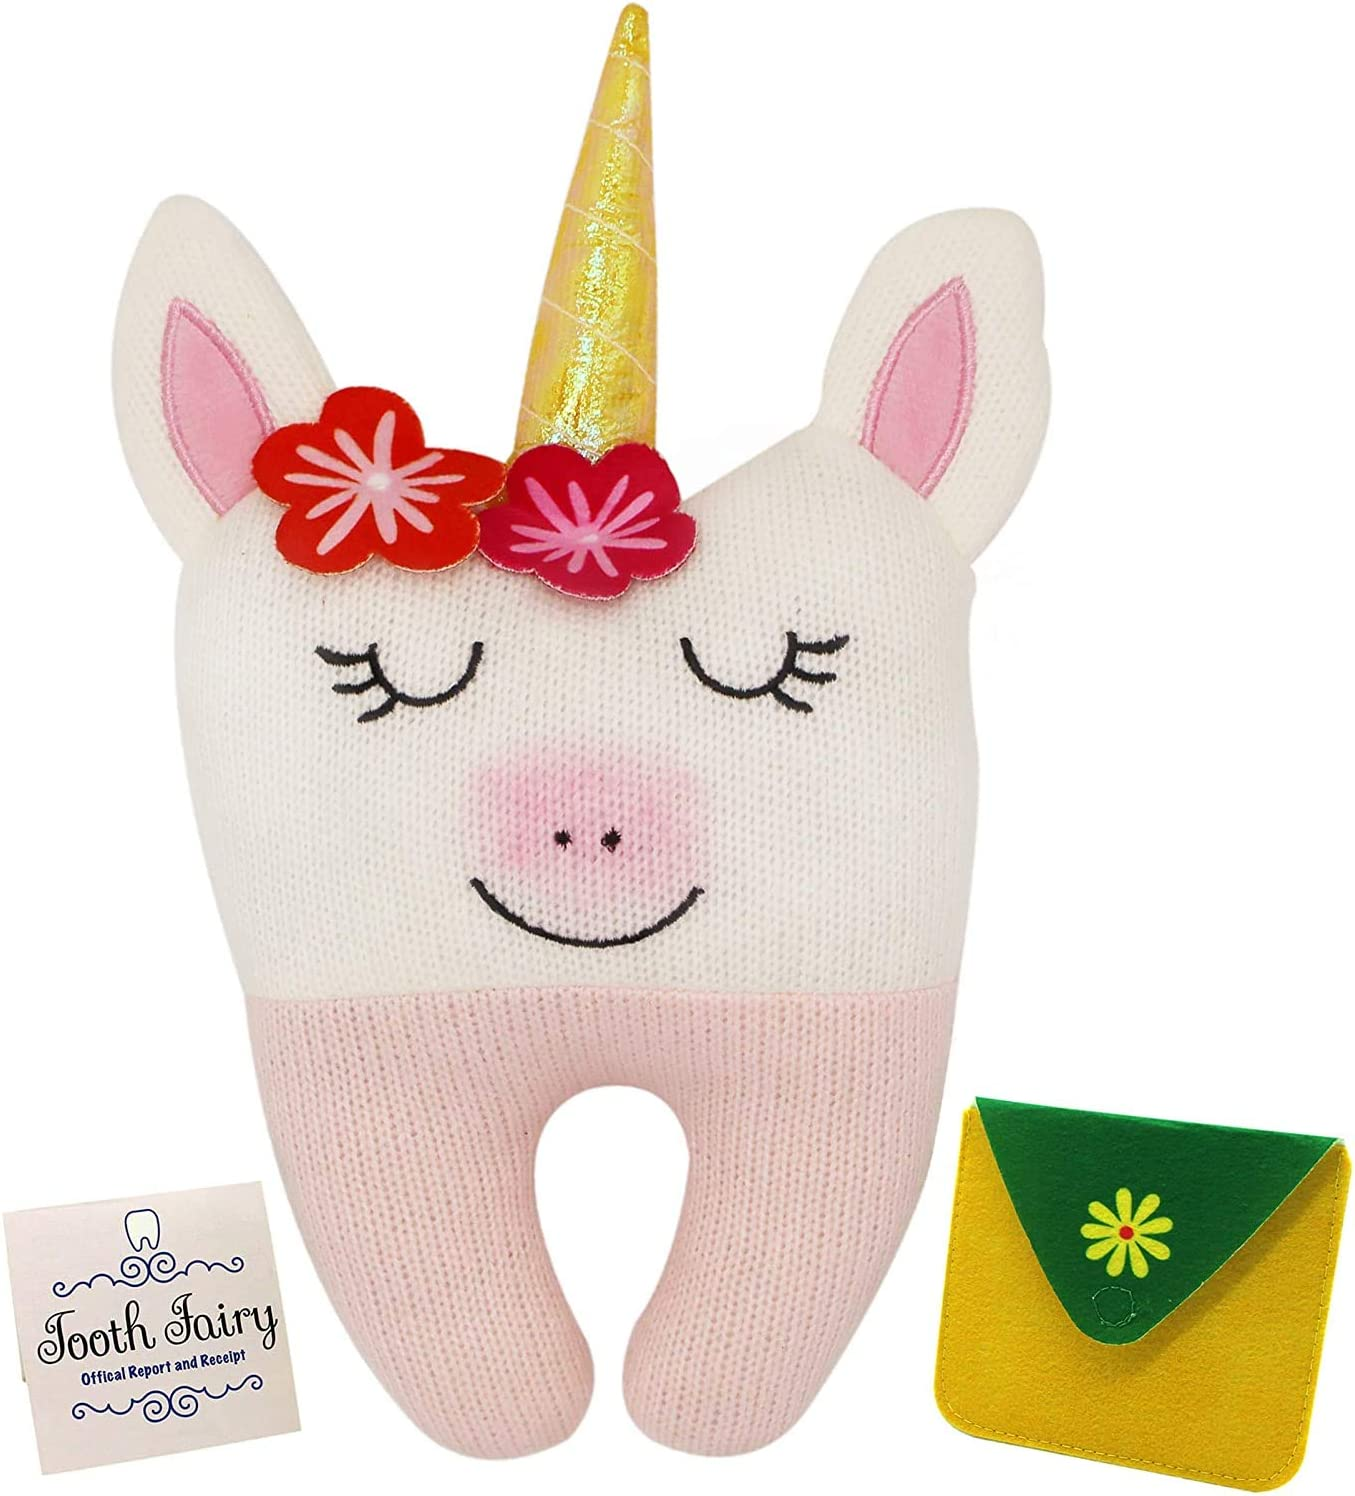 Tooth Fairy Pillow - Our Tooth Fairy Pillows are for Girls and Boys - This Tooth Fairy Kit Includes a Notecard and Keepsake Pouch - Super Cute Unicorn Tooth Fairy Gifts for Girls and Boys